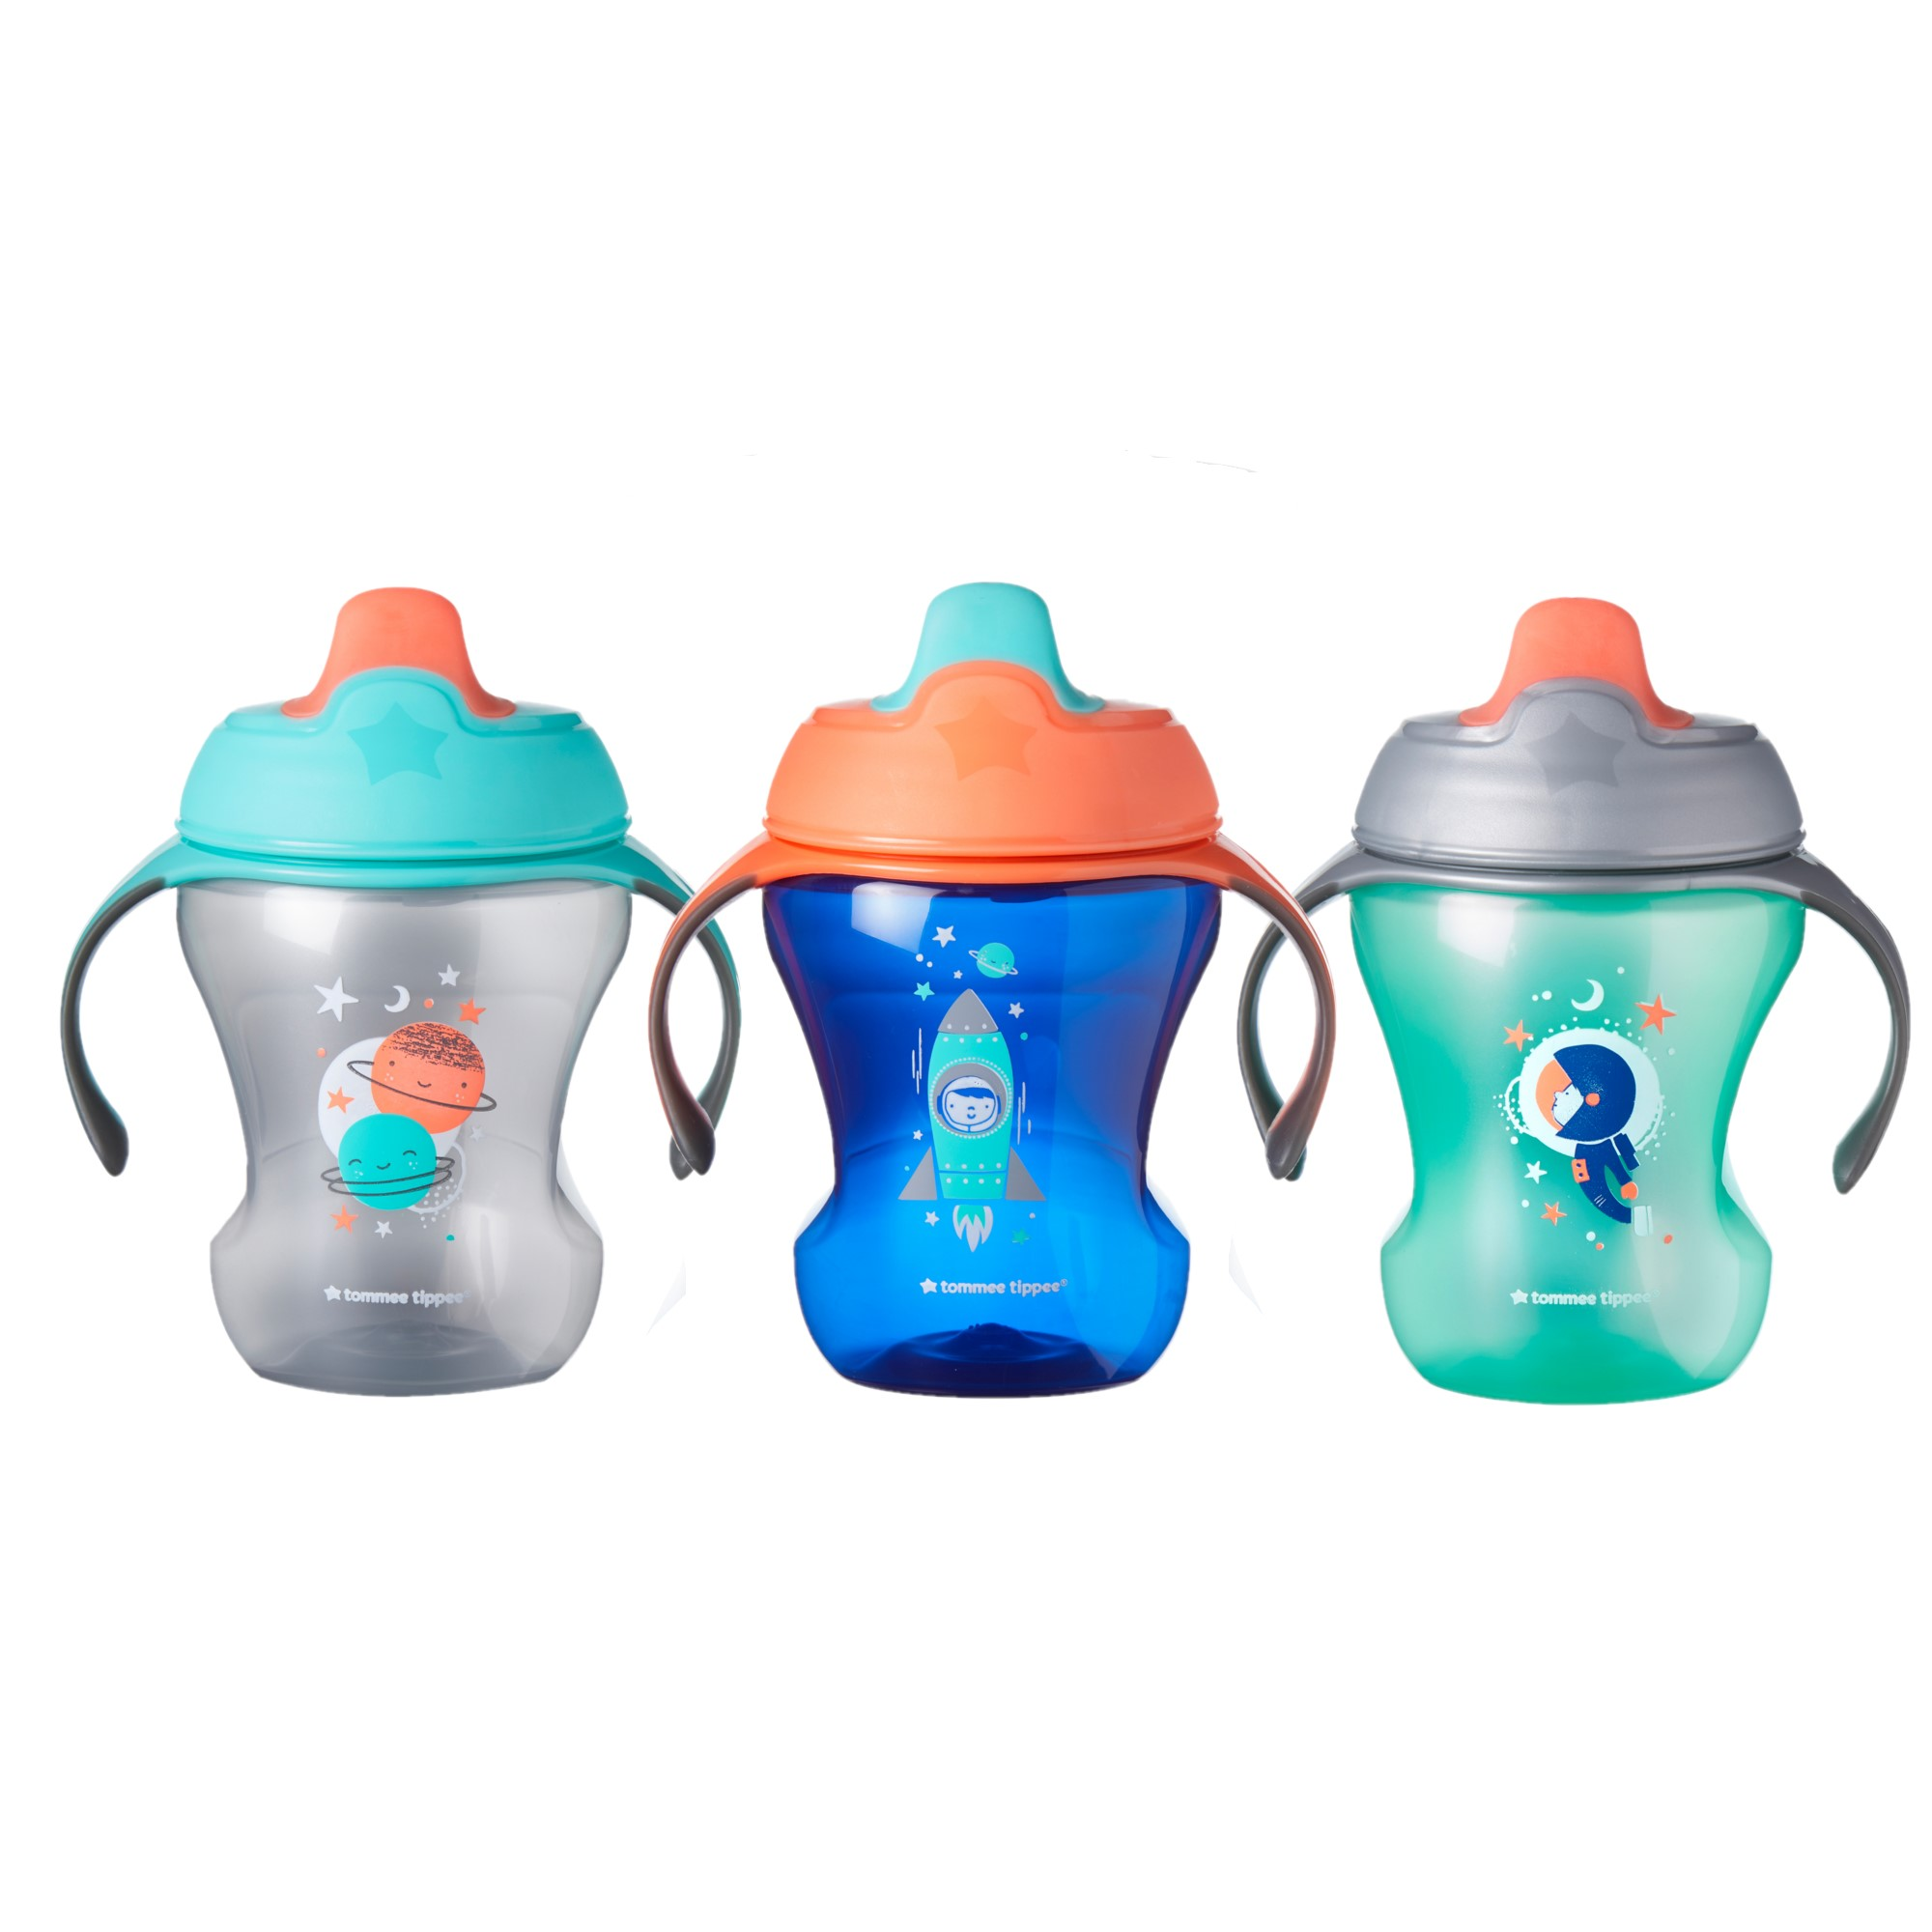 Baby Open Cup 5oz Silicone Training Cup for Infants Toddler Learning Cup with Two Handles blue 6months+